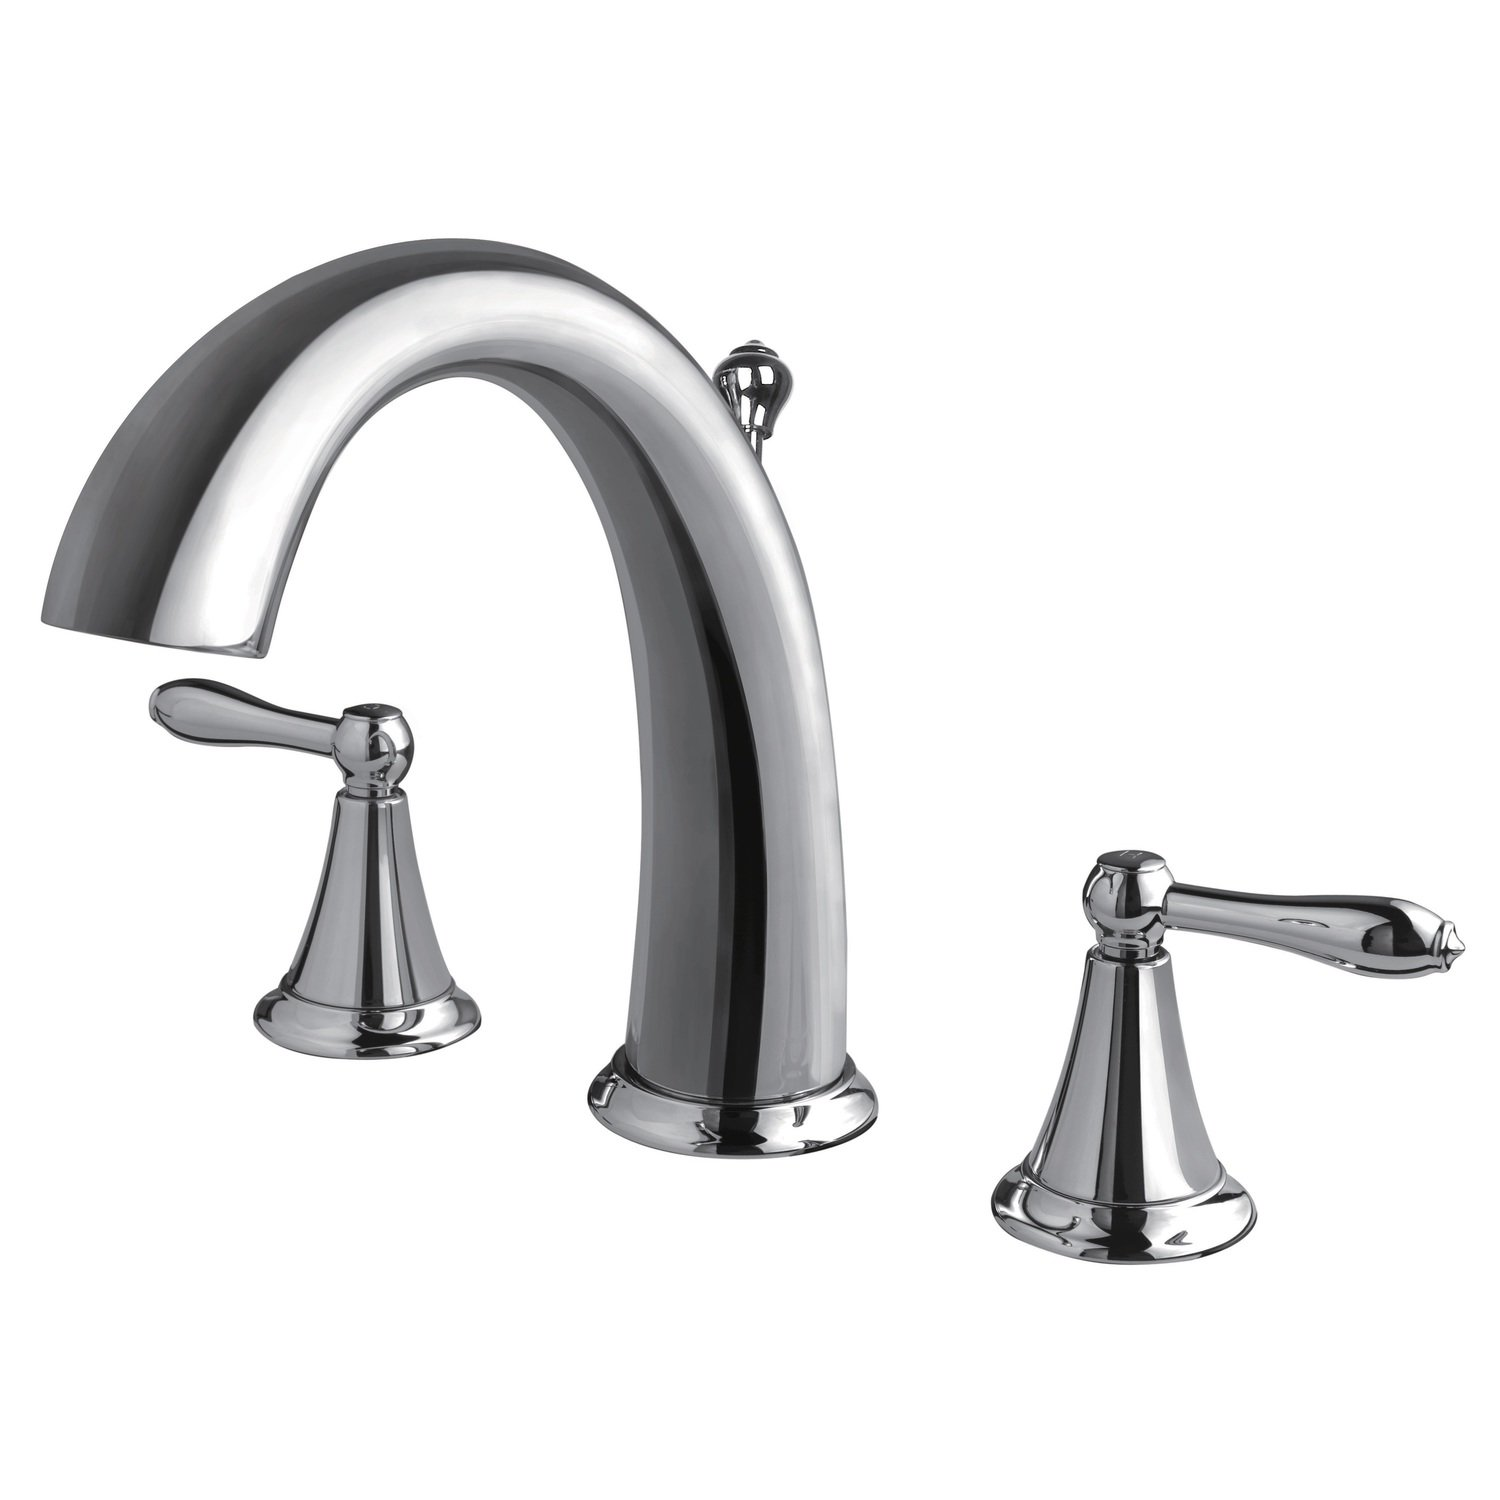 Contour Chrome Two Handle Widespread Lavatory Faucet